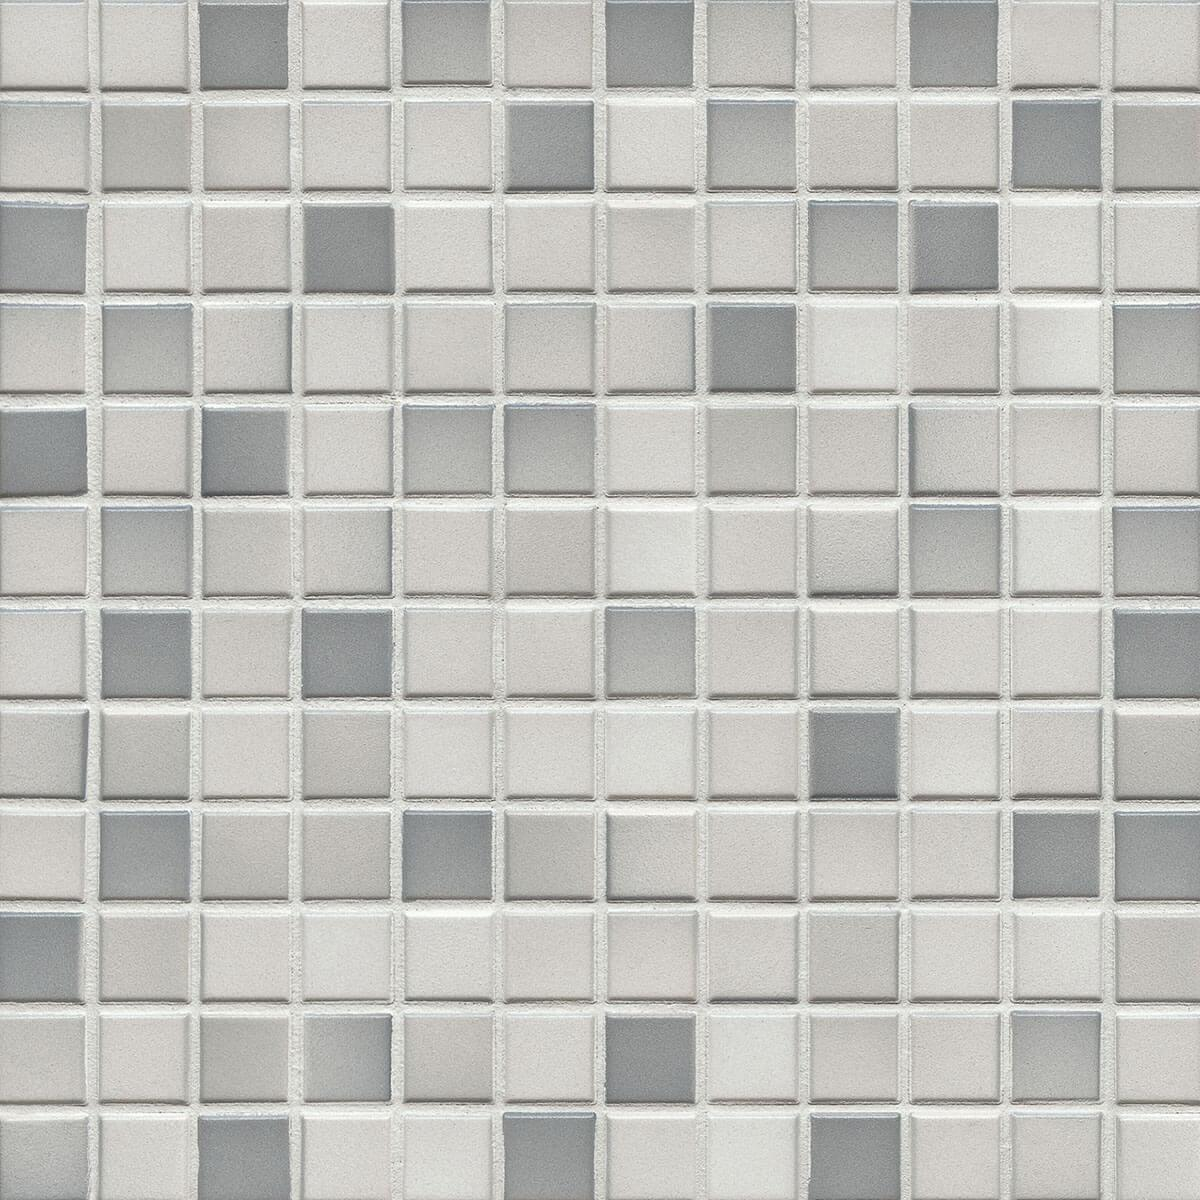 Agrob Buchtal Tiles - KLAY_Fresh-_0006_Fresh_Mix_Secura_F41303H